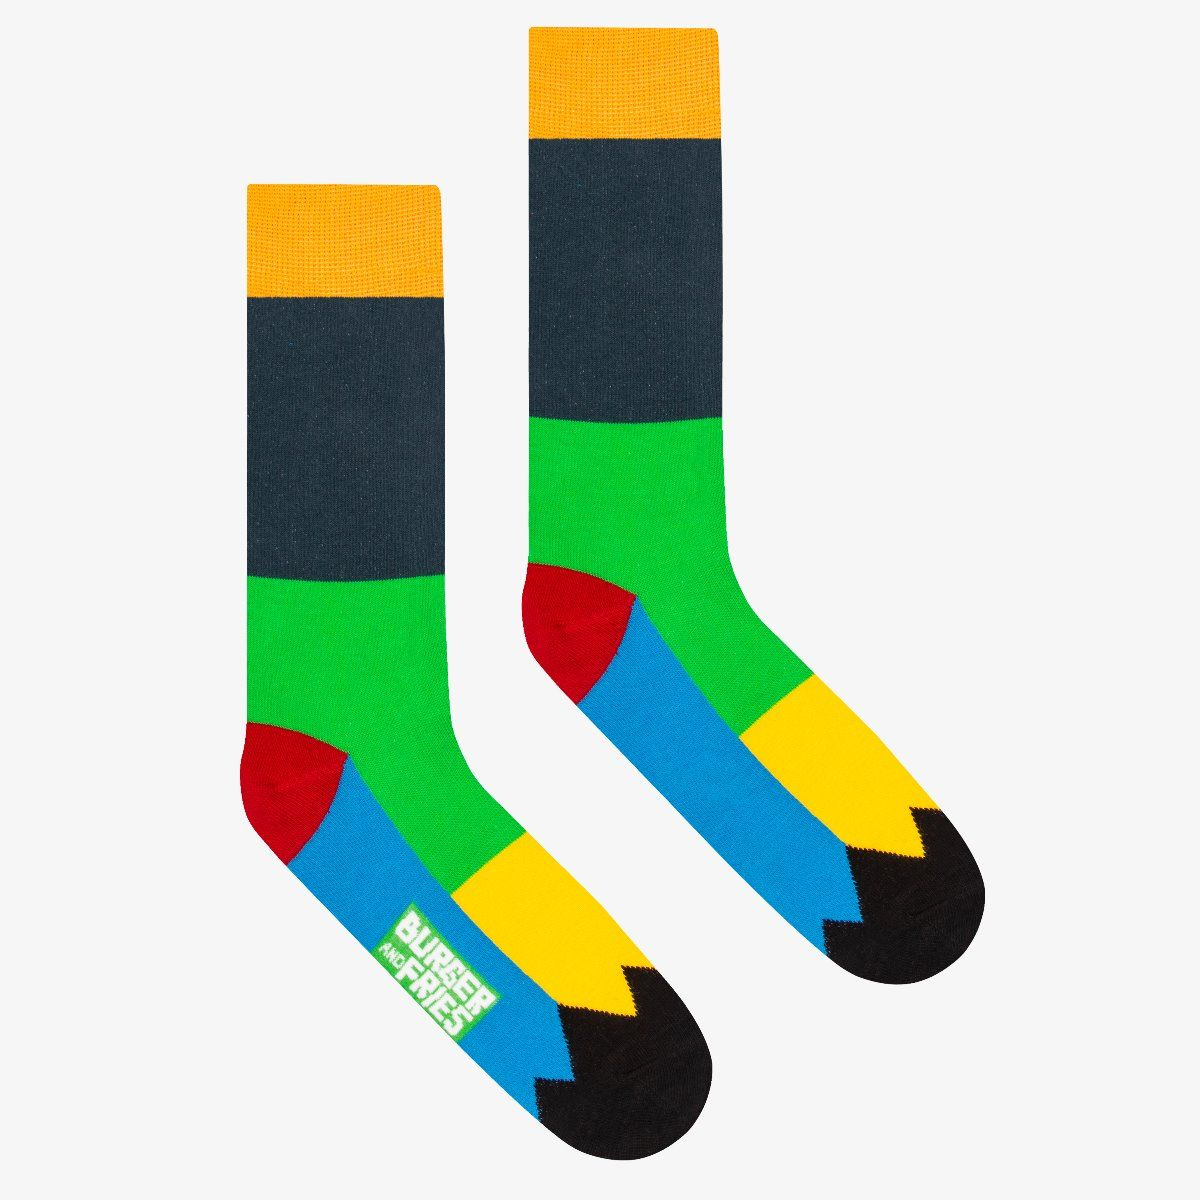 PATCHWORK SOCKS NAVY BLUE/EMERALD GREEN